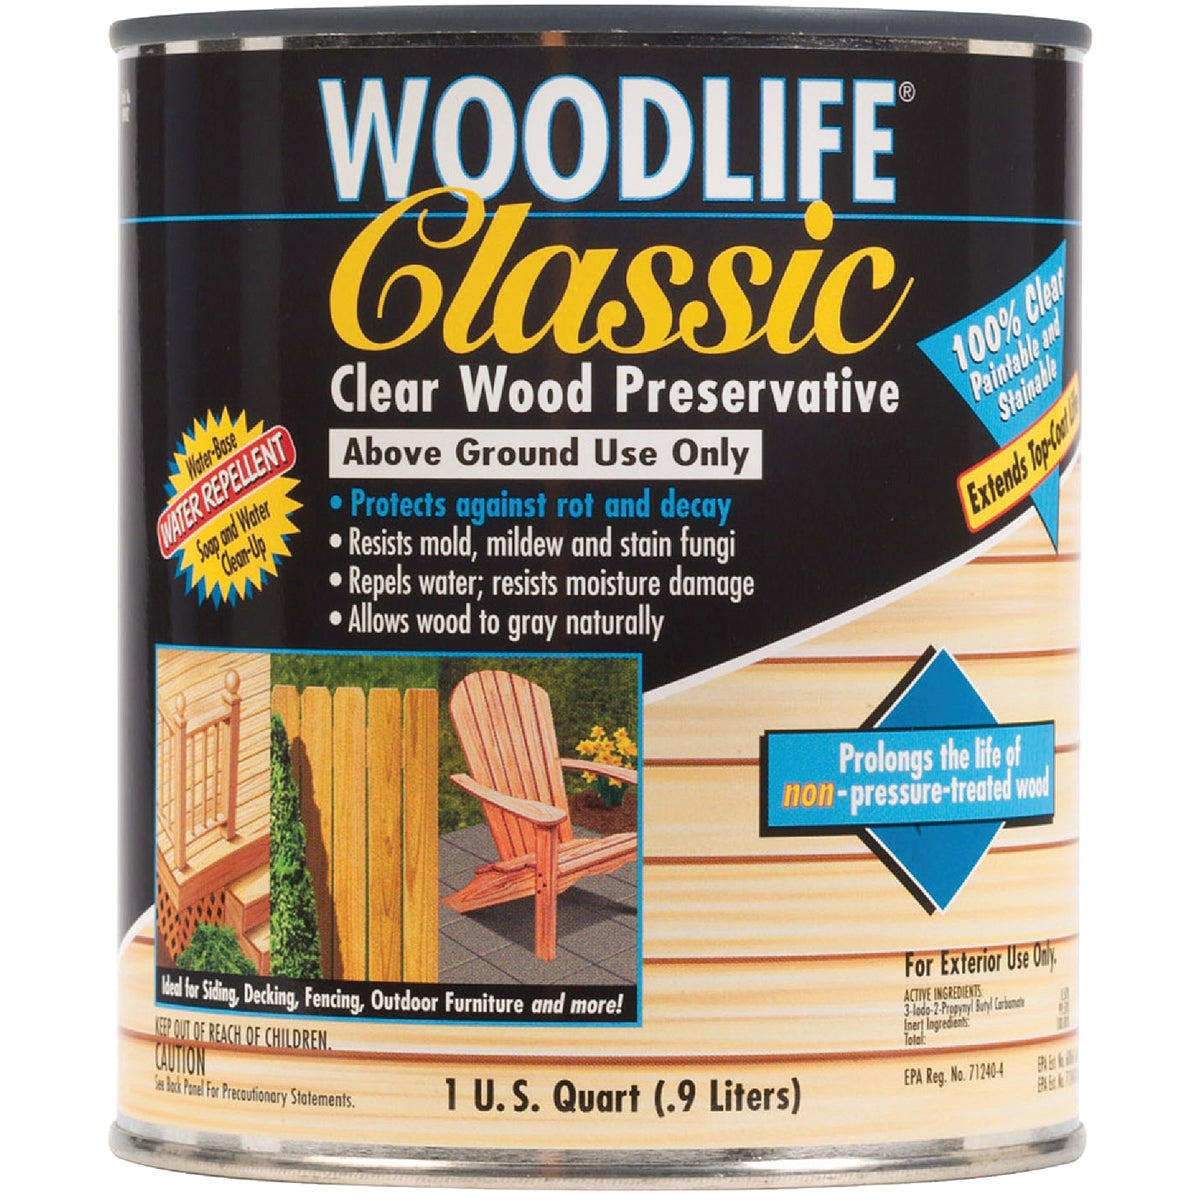 CLEAR WOOD PRESERVATIVE